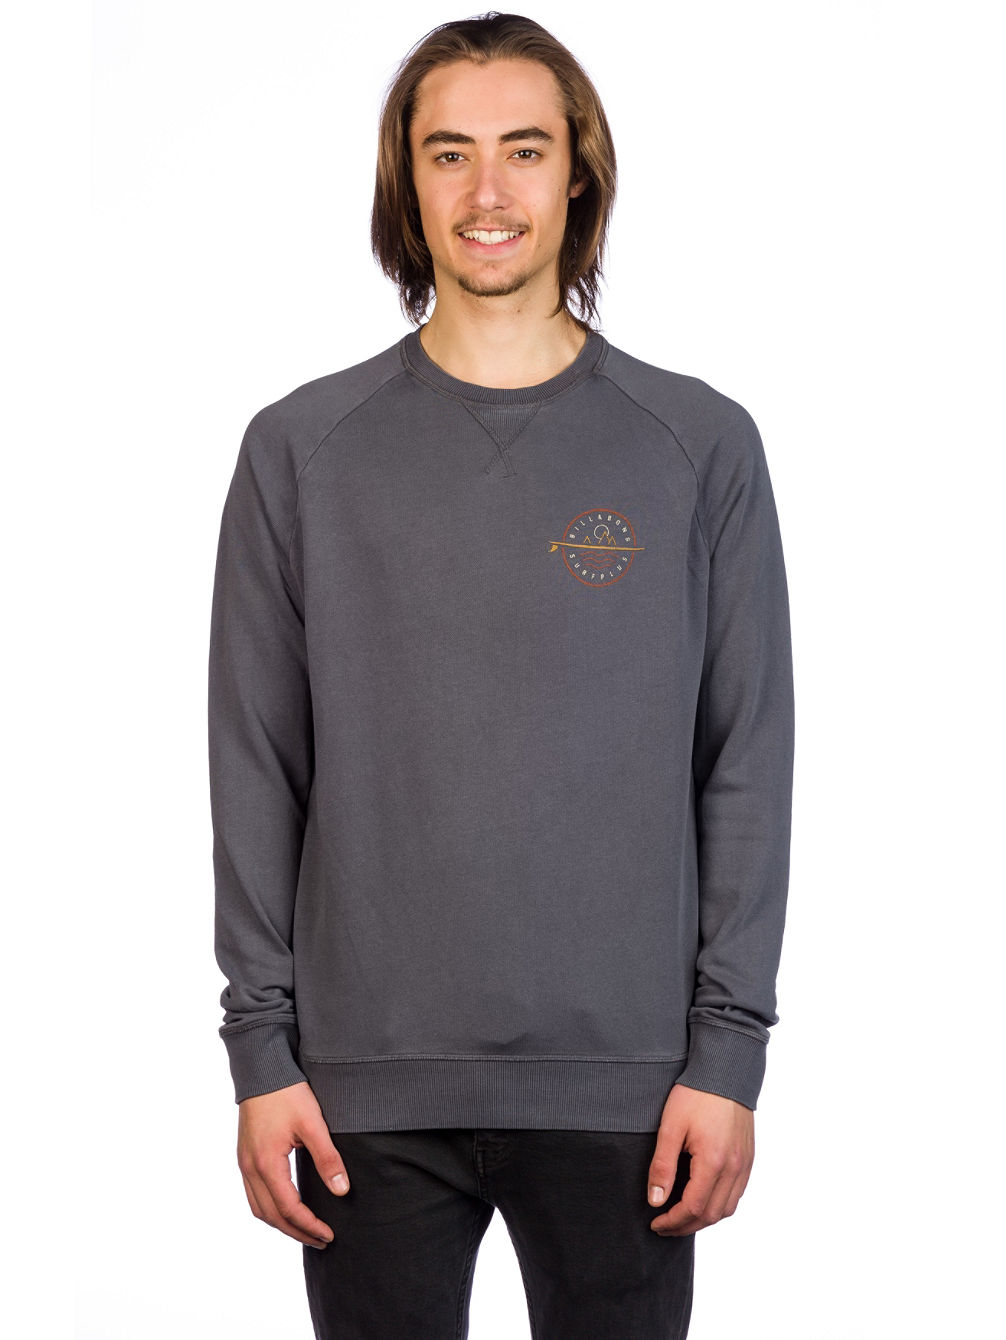 Crossboard Crew Sweater